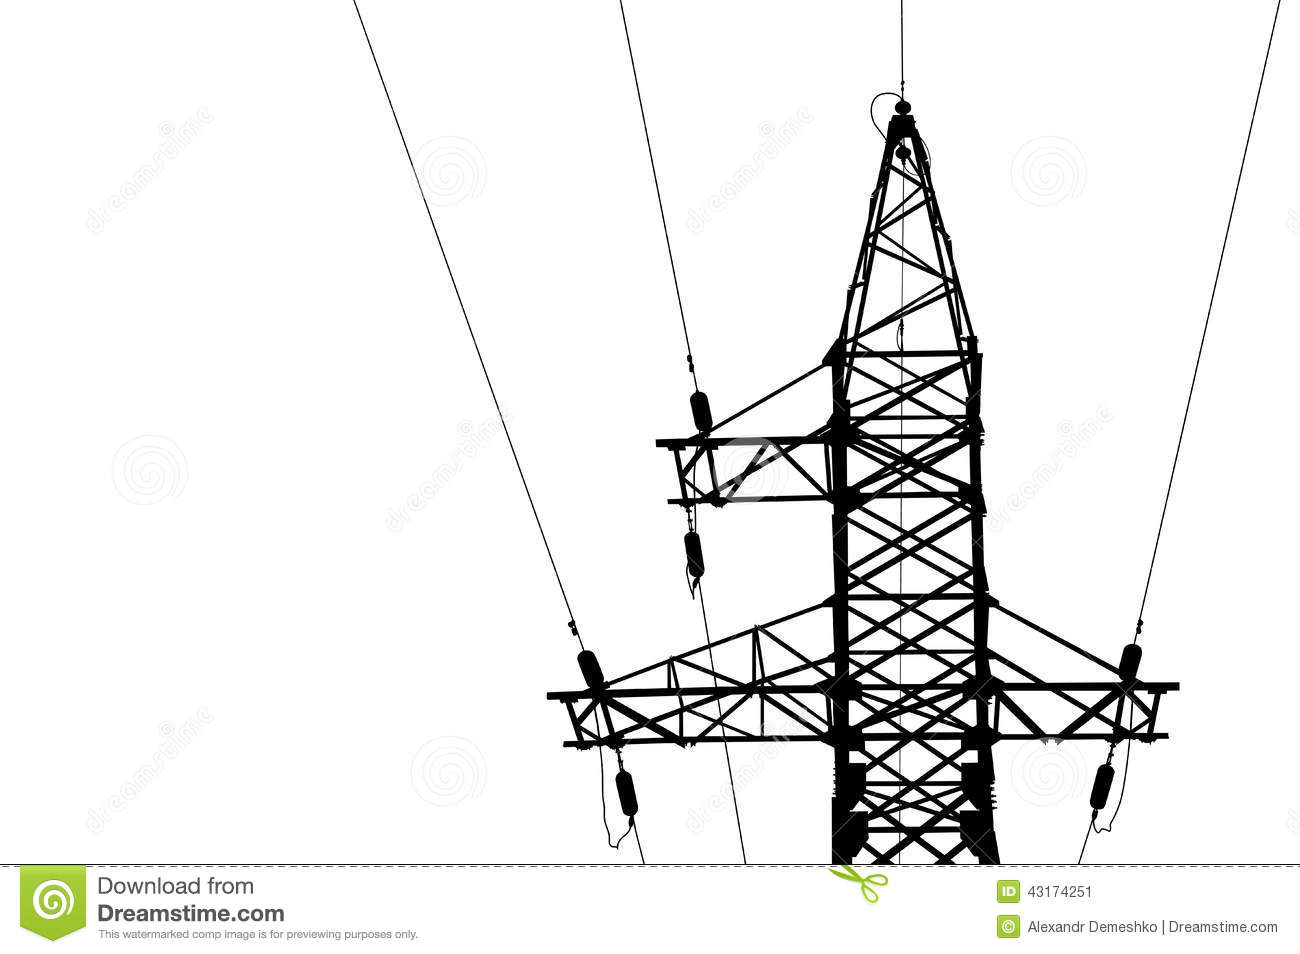 high voltage power lines and pylon stock vector image Car Amp Wiring Diagram Basic Car Audio Wiring Diagram